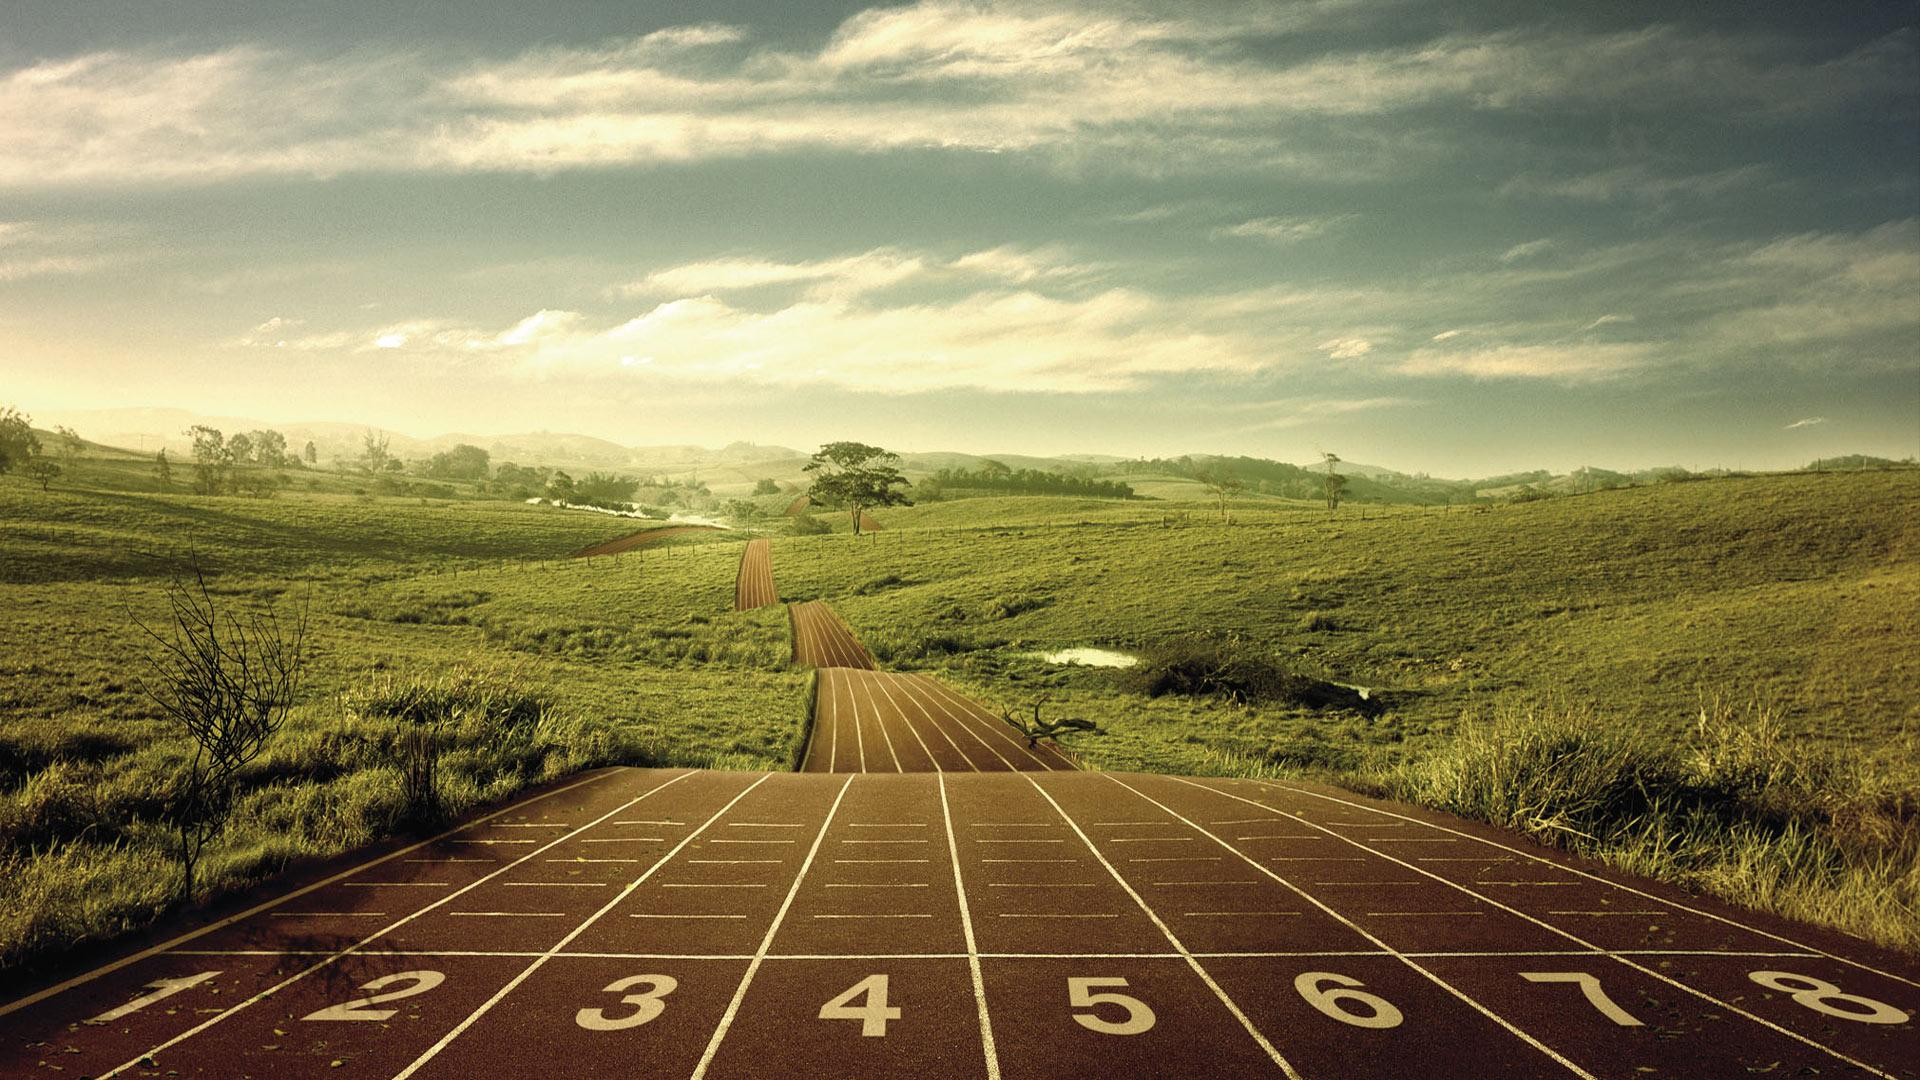 free-wallpapers-racing-track-in-green-fields-wallpaper